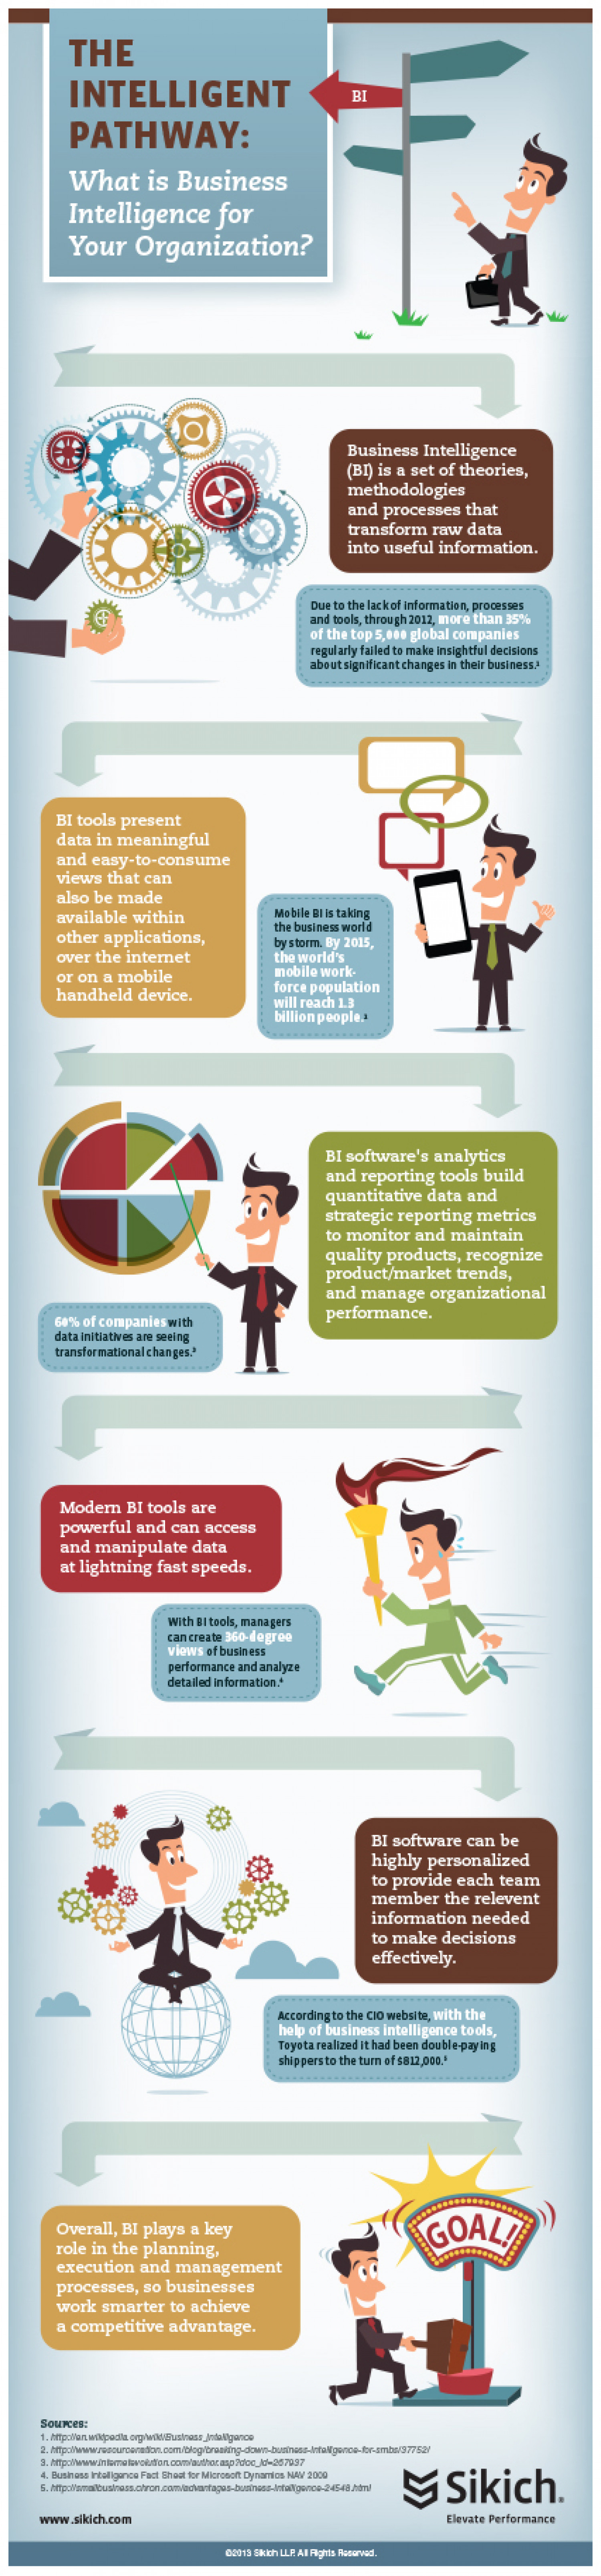 The Intelligent Pathway: What is Business Intelligence for Your Organization? Infographic